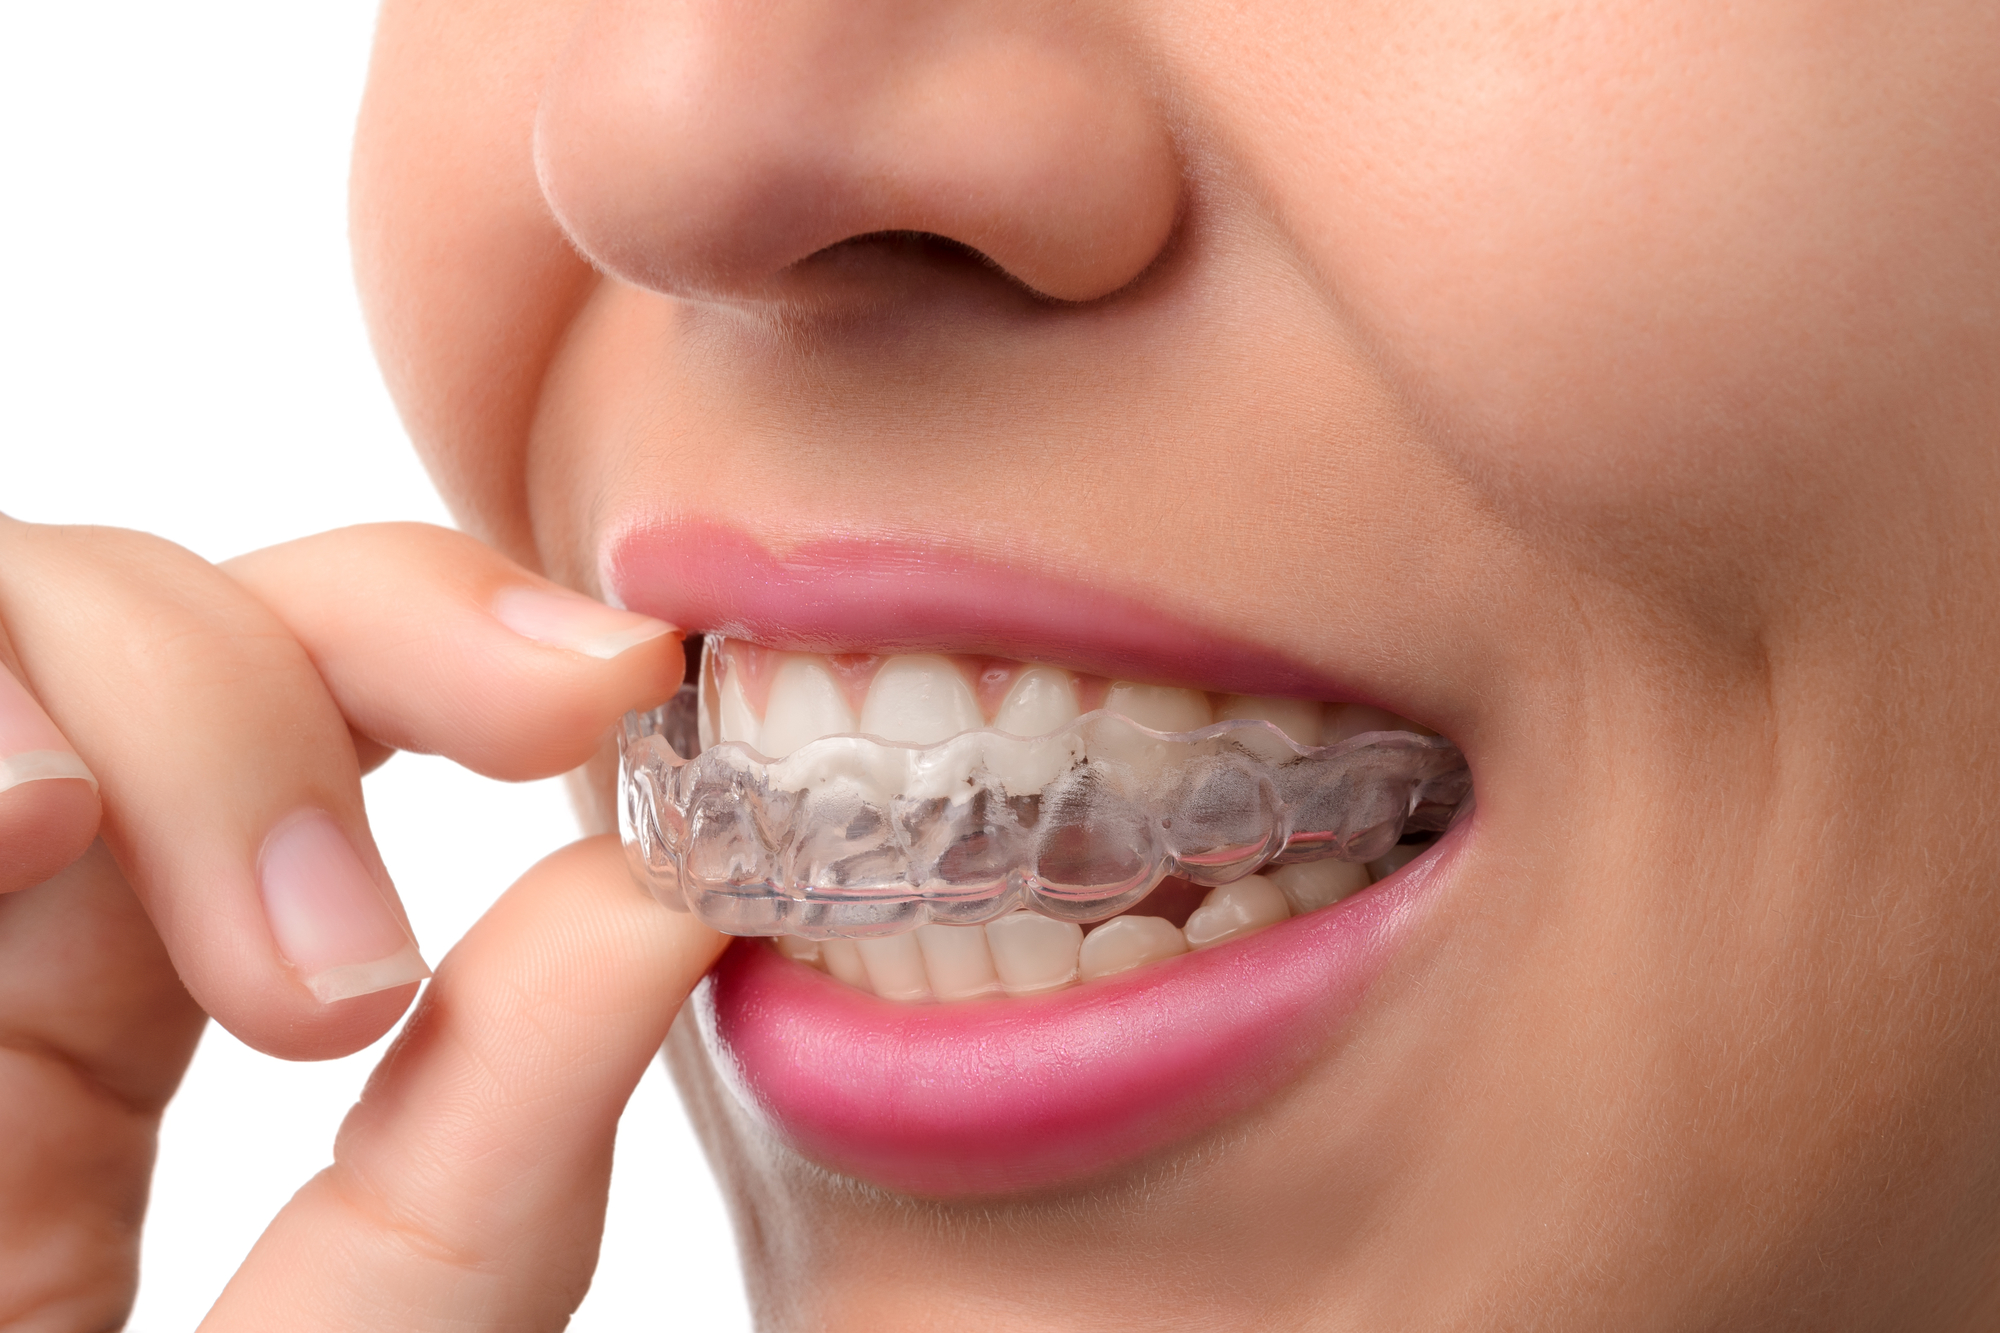 Where can I find Invisalign in West Palm Beach ?